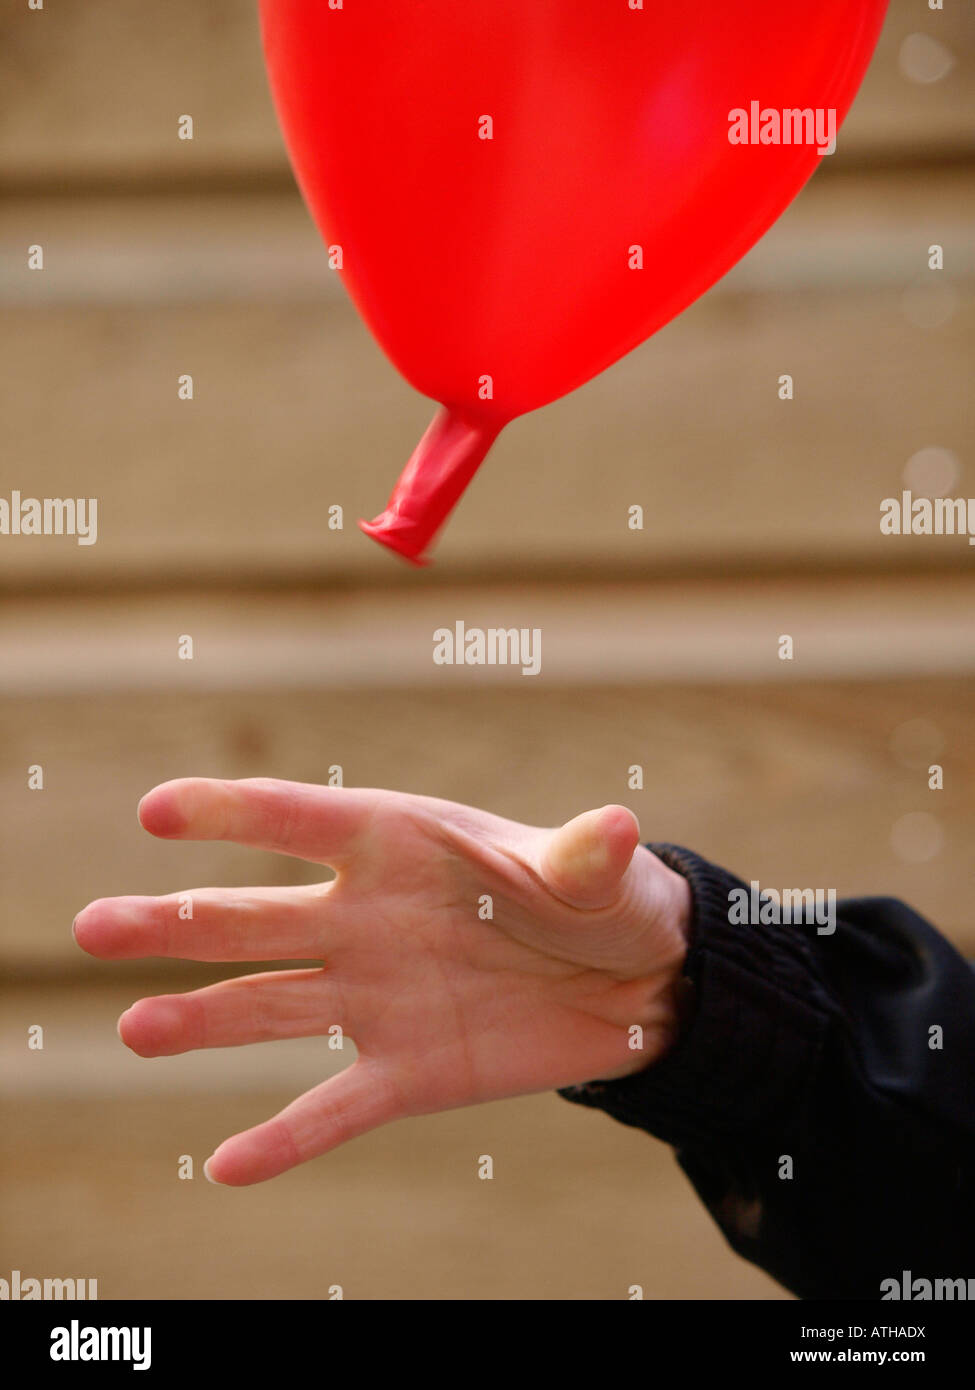 Child s hand letting go of balloon that is flying away because of the air pressure - Stock Image